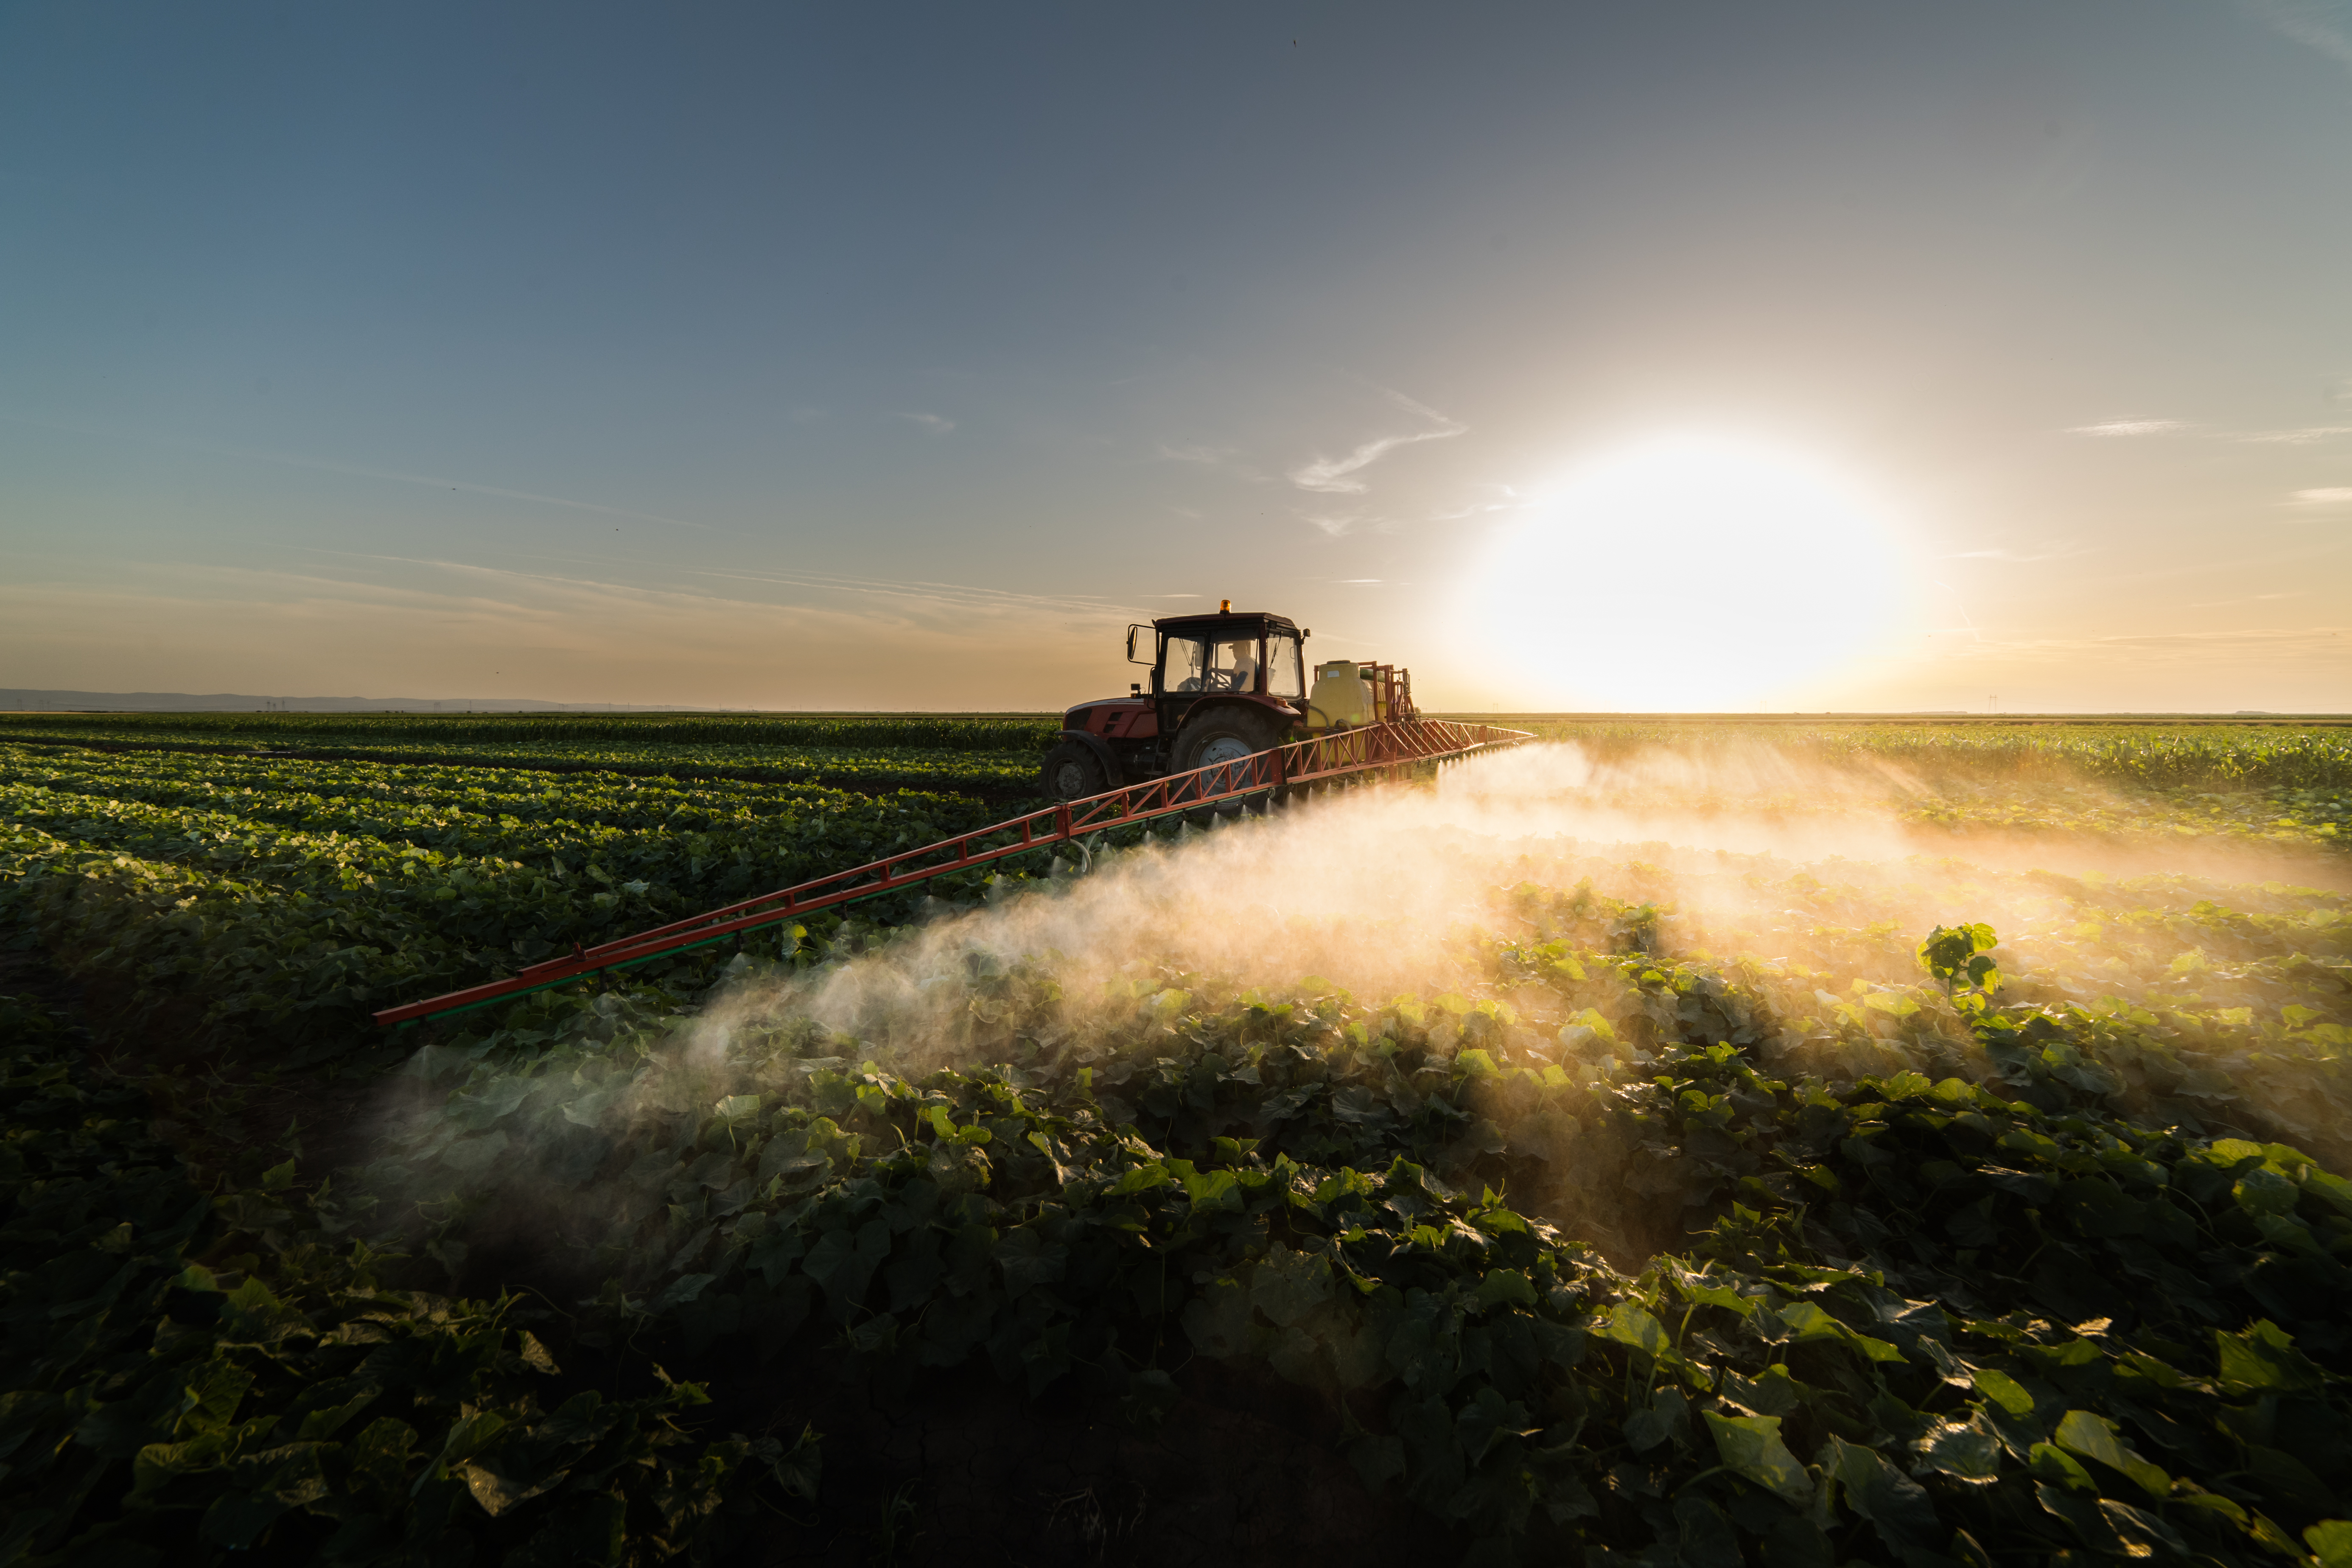 New study finds pesticide exposure connected to increased Autism risk